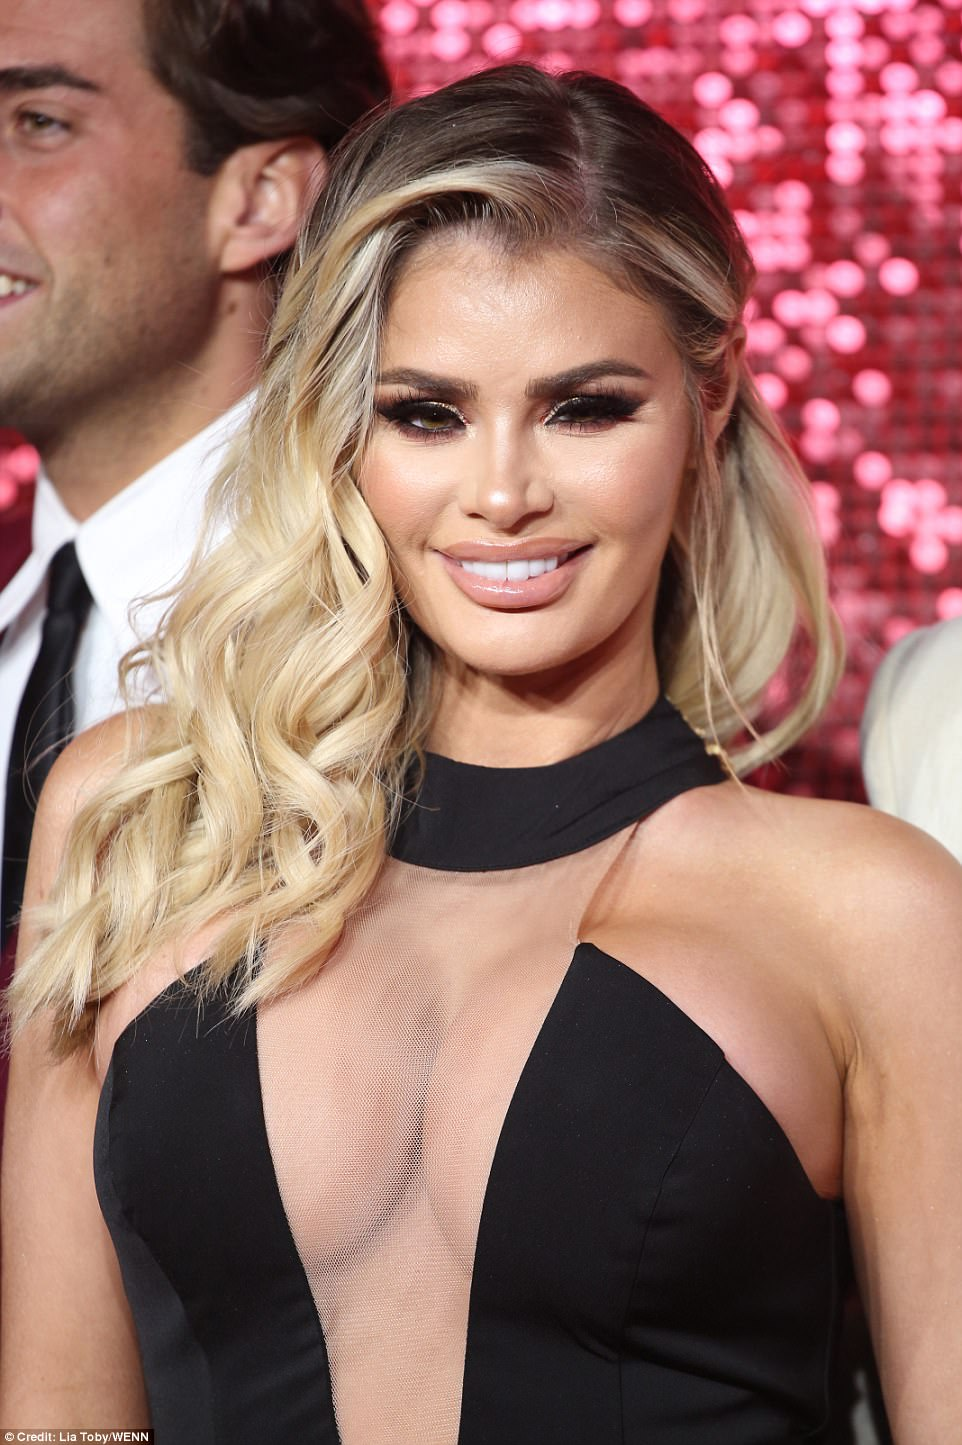 Taking the plunge! Chloe Sims, 35 made for a VERY eye-popping display as she showcased her more than ample bust at the gala